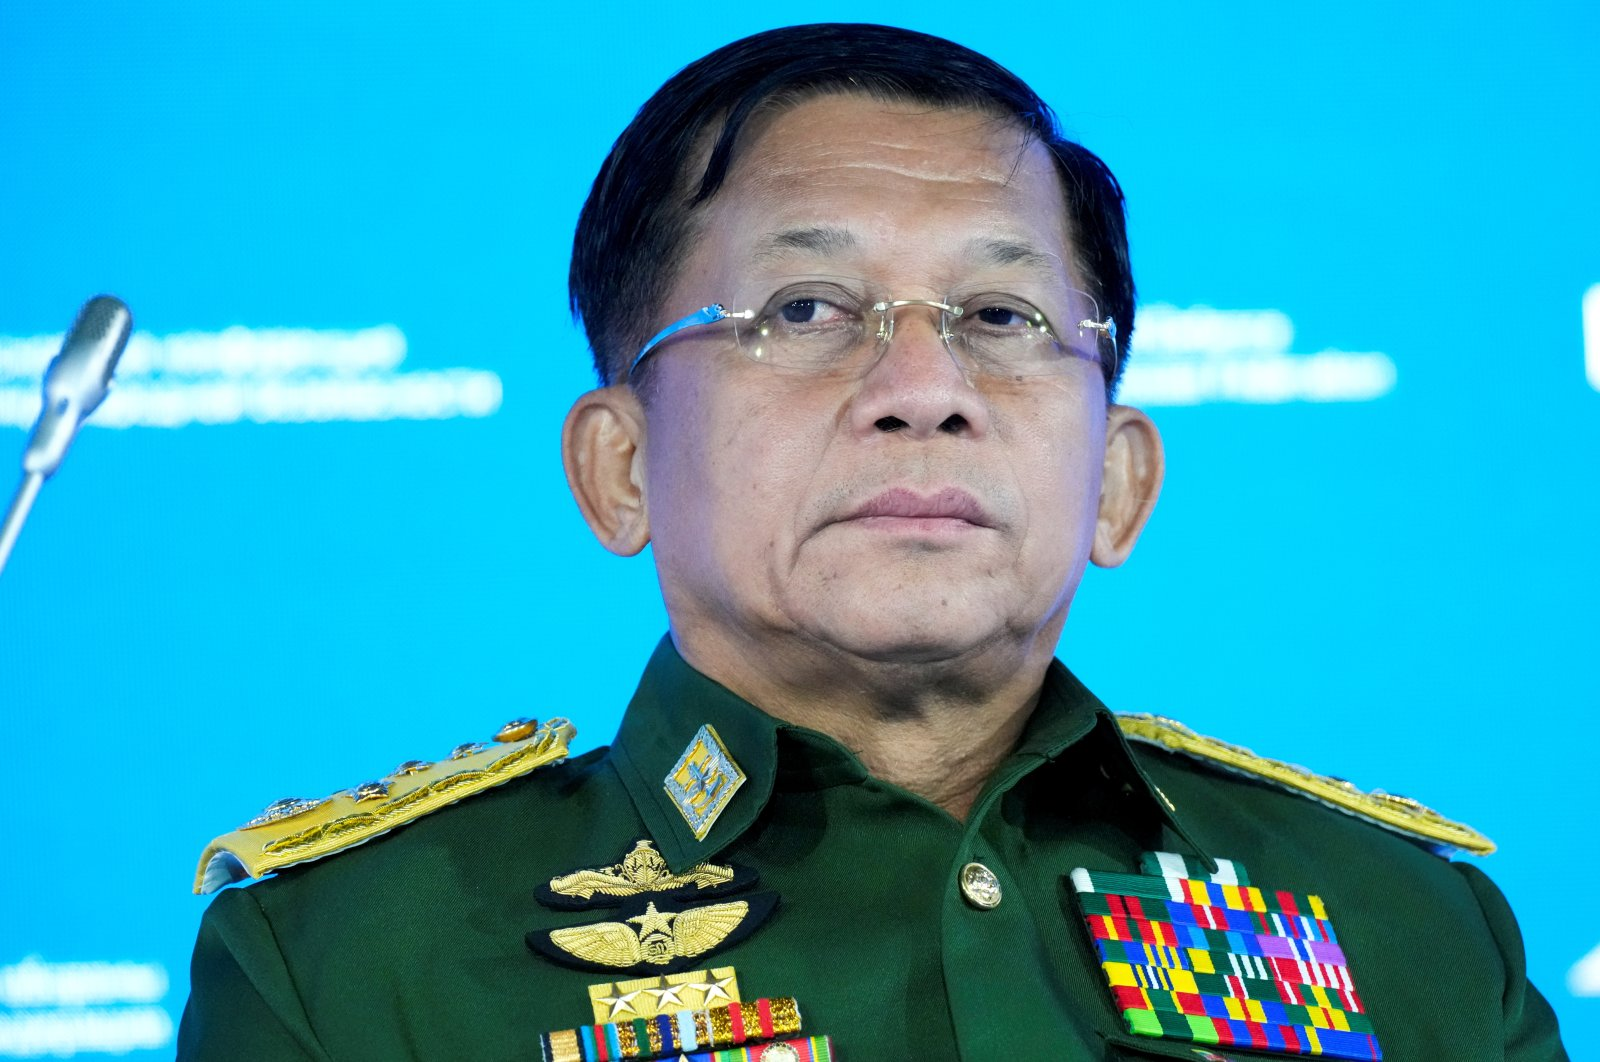 Commander in Chief of Myanmar's armed forces Senior Gen. Min Aung Hlaing attends the IX Moscow conference on international security in Moscow, Russia June 23, 2021. (Reuters Photo)